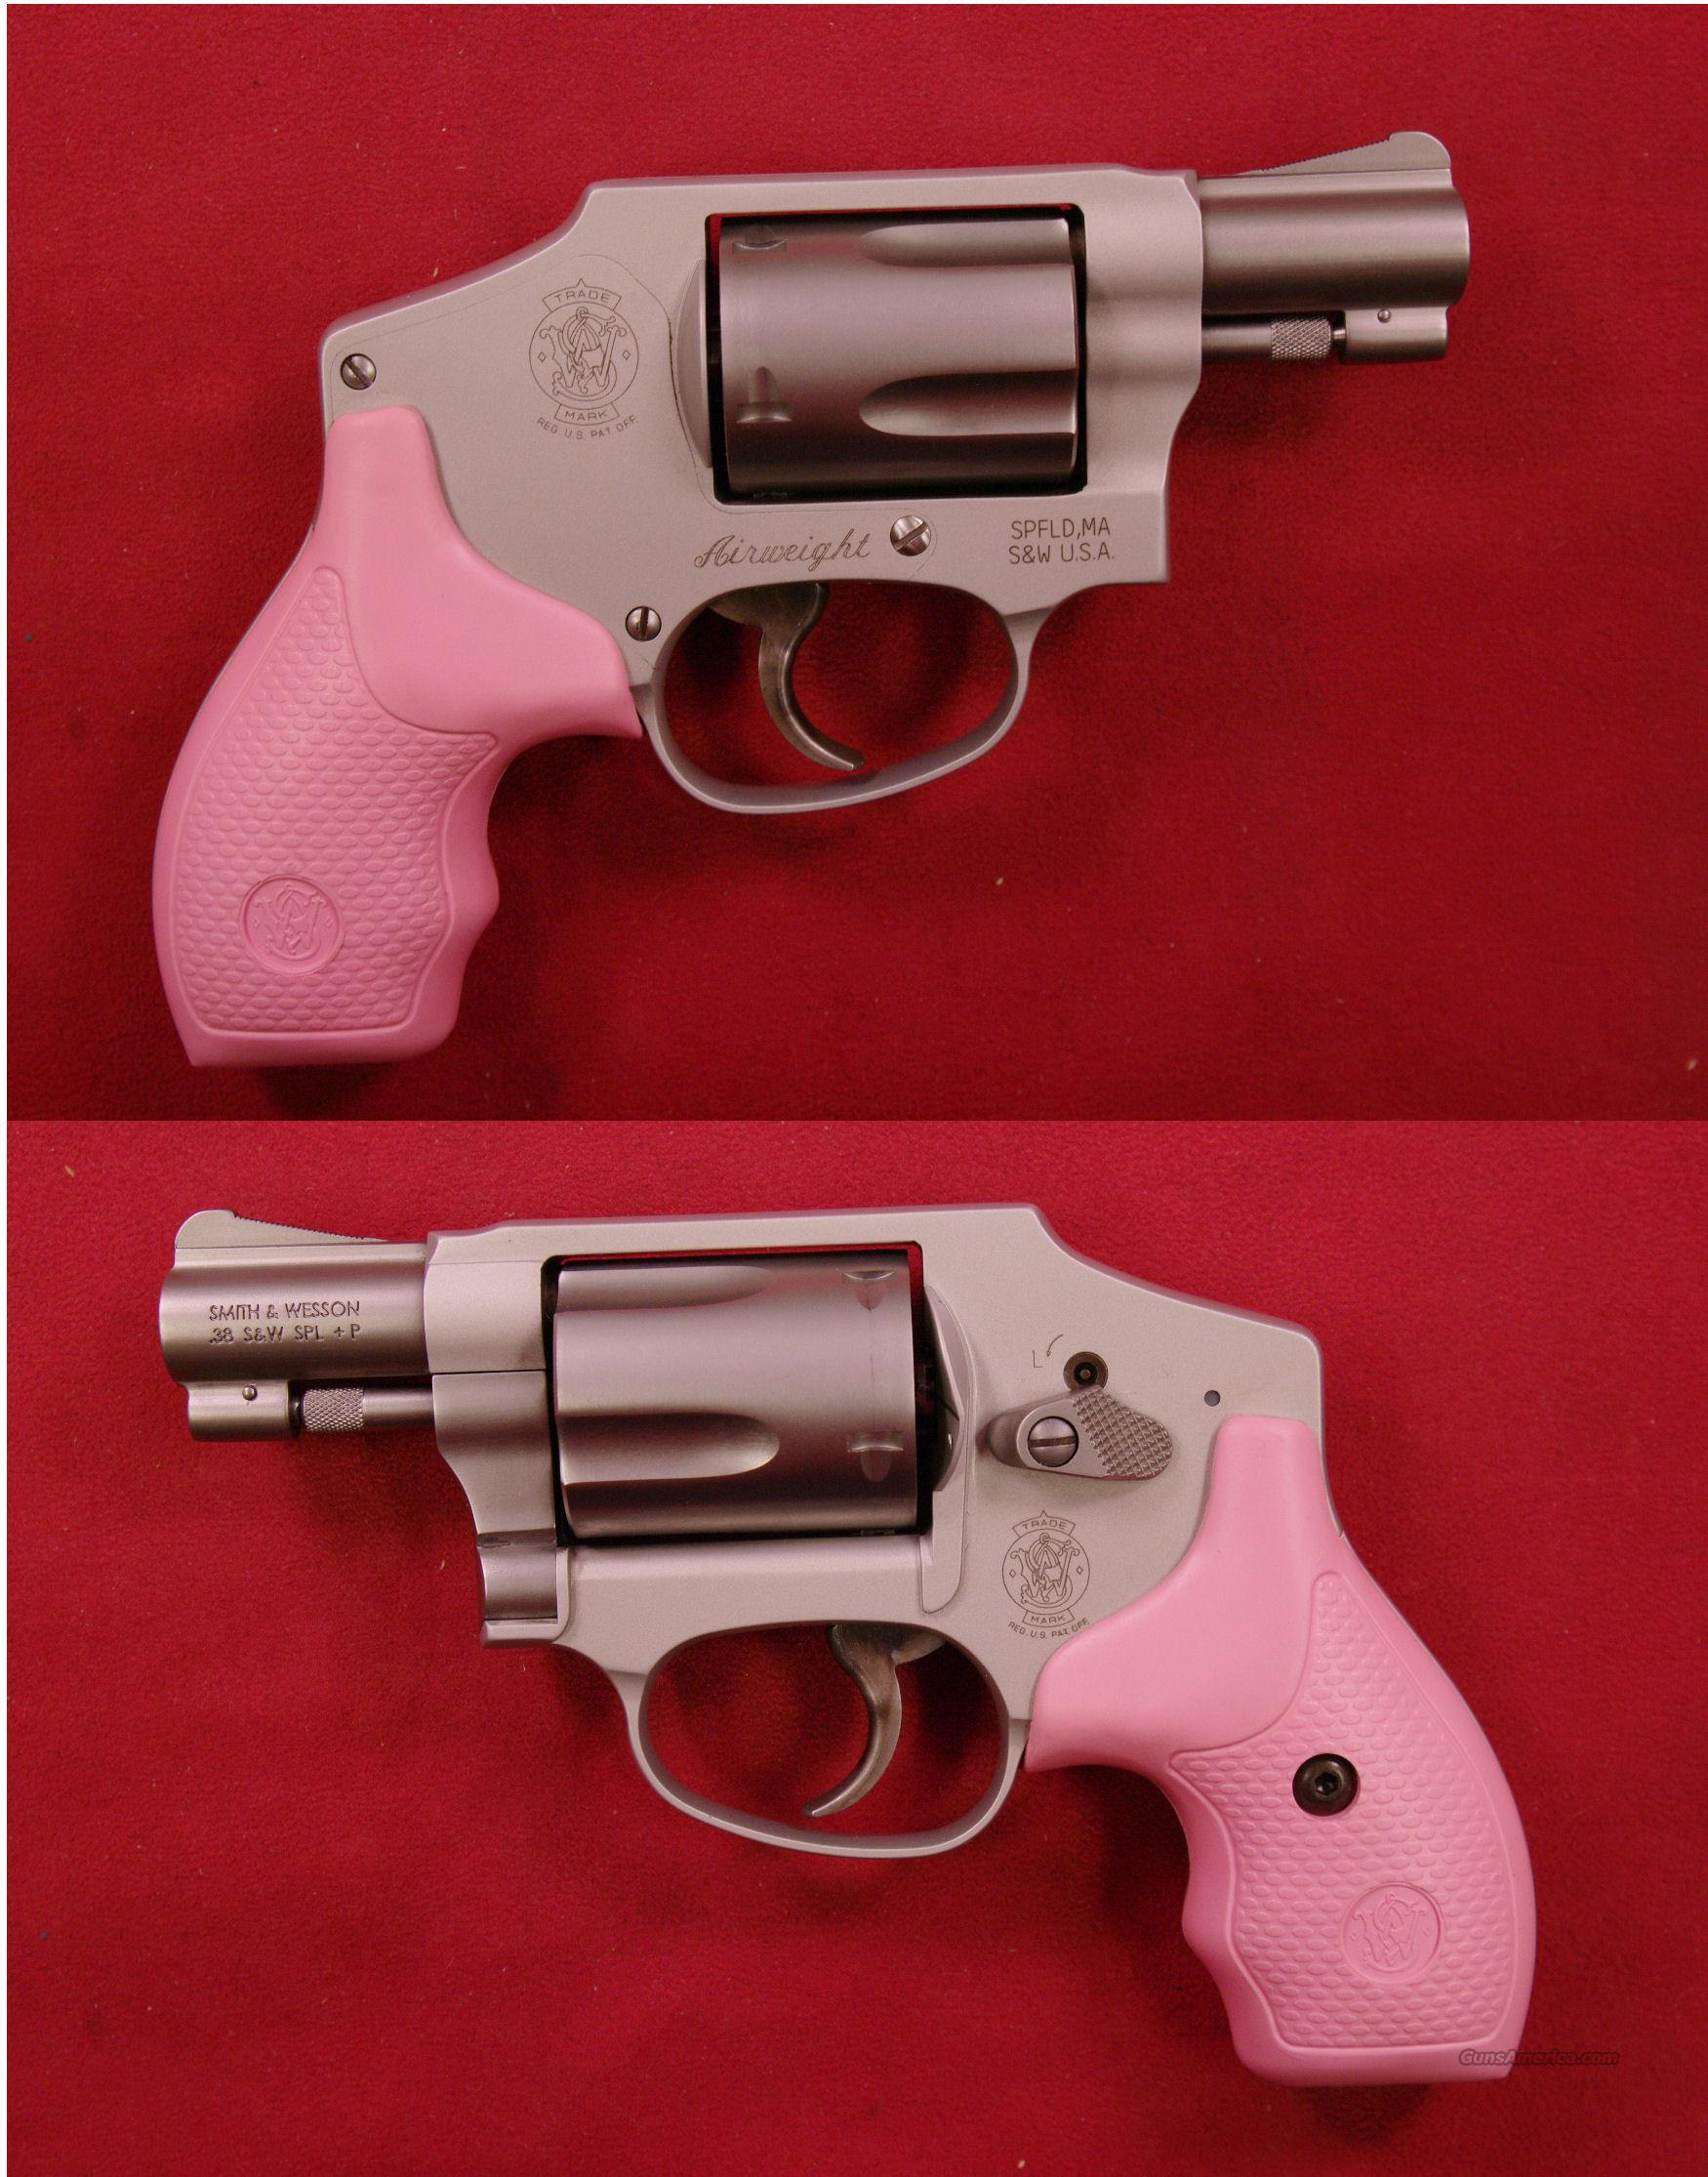 Smith & Wesson 642-2 .38 Special   Guns > Pistols > Smith & Wesson Revolvers > Pocket Pistols